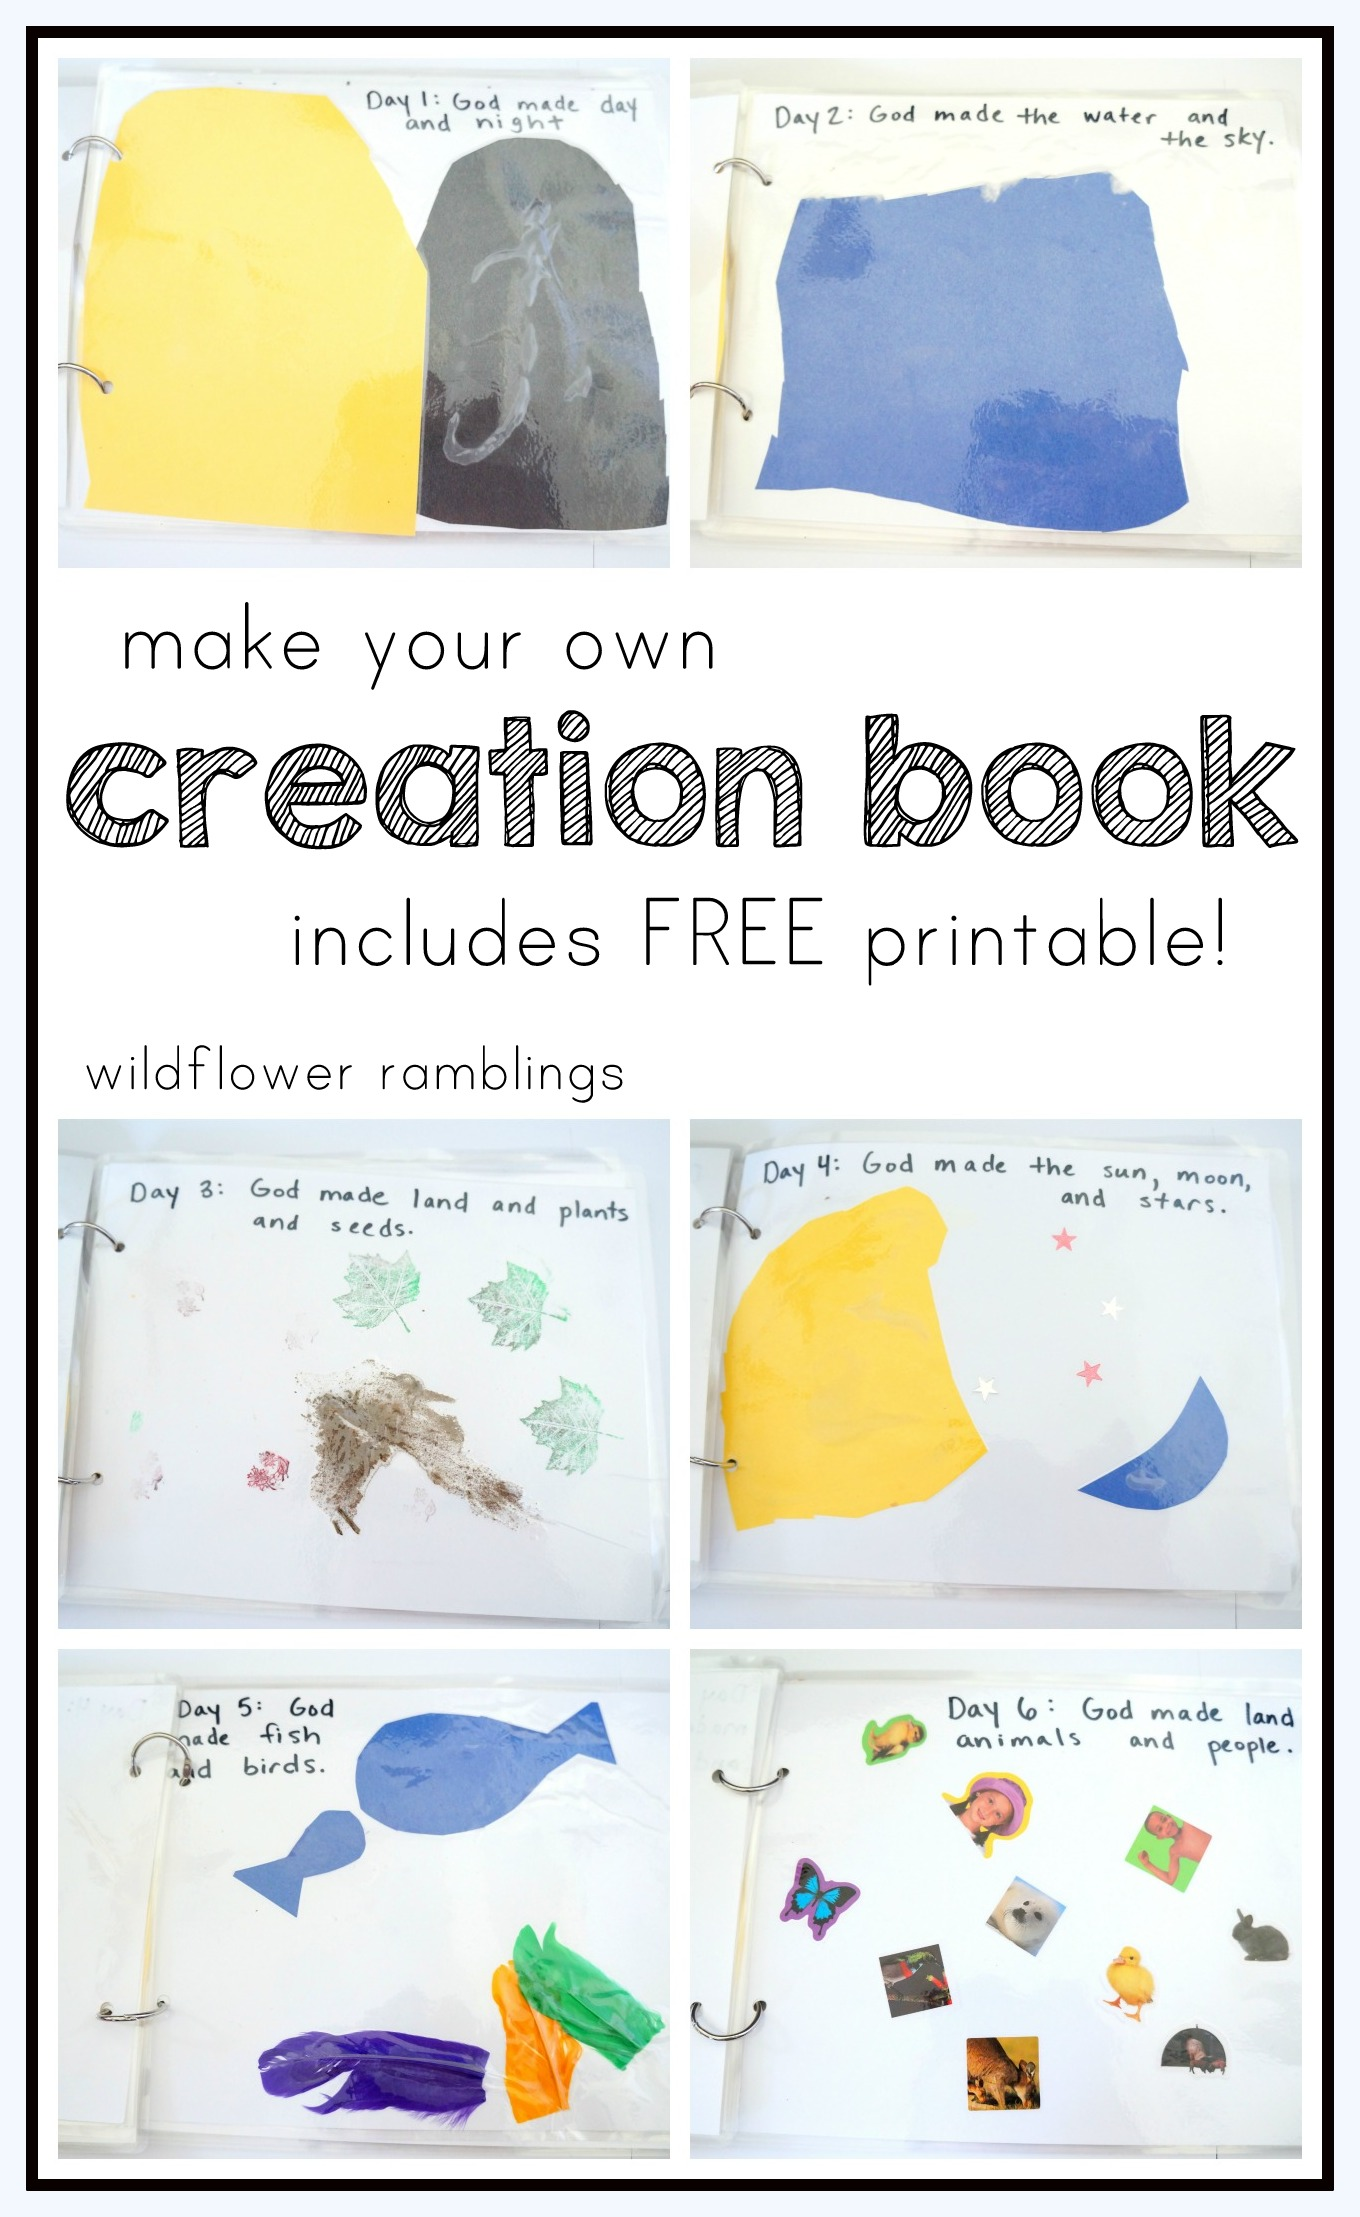 Make Your Own Creation Book Free Printable